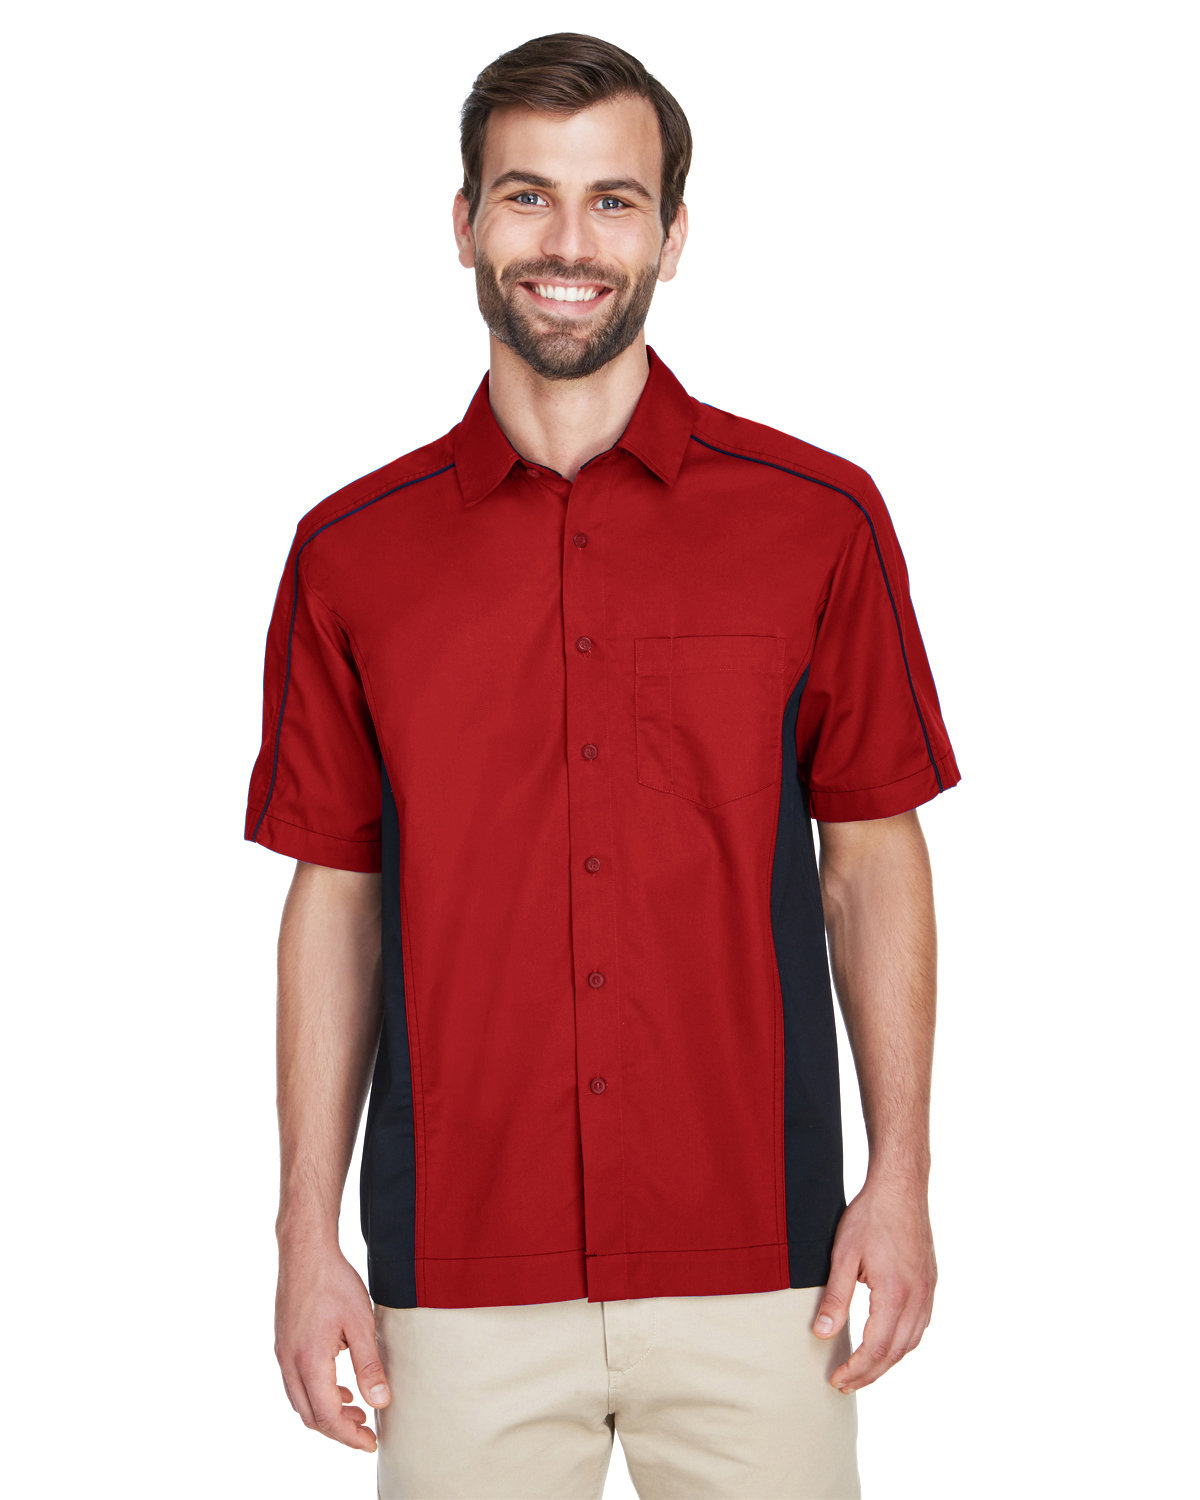 North End Men's Fuse Colorblock Twill Shirt CLASSIC RED/ BLK